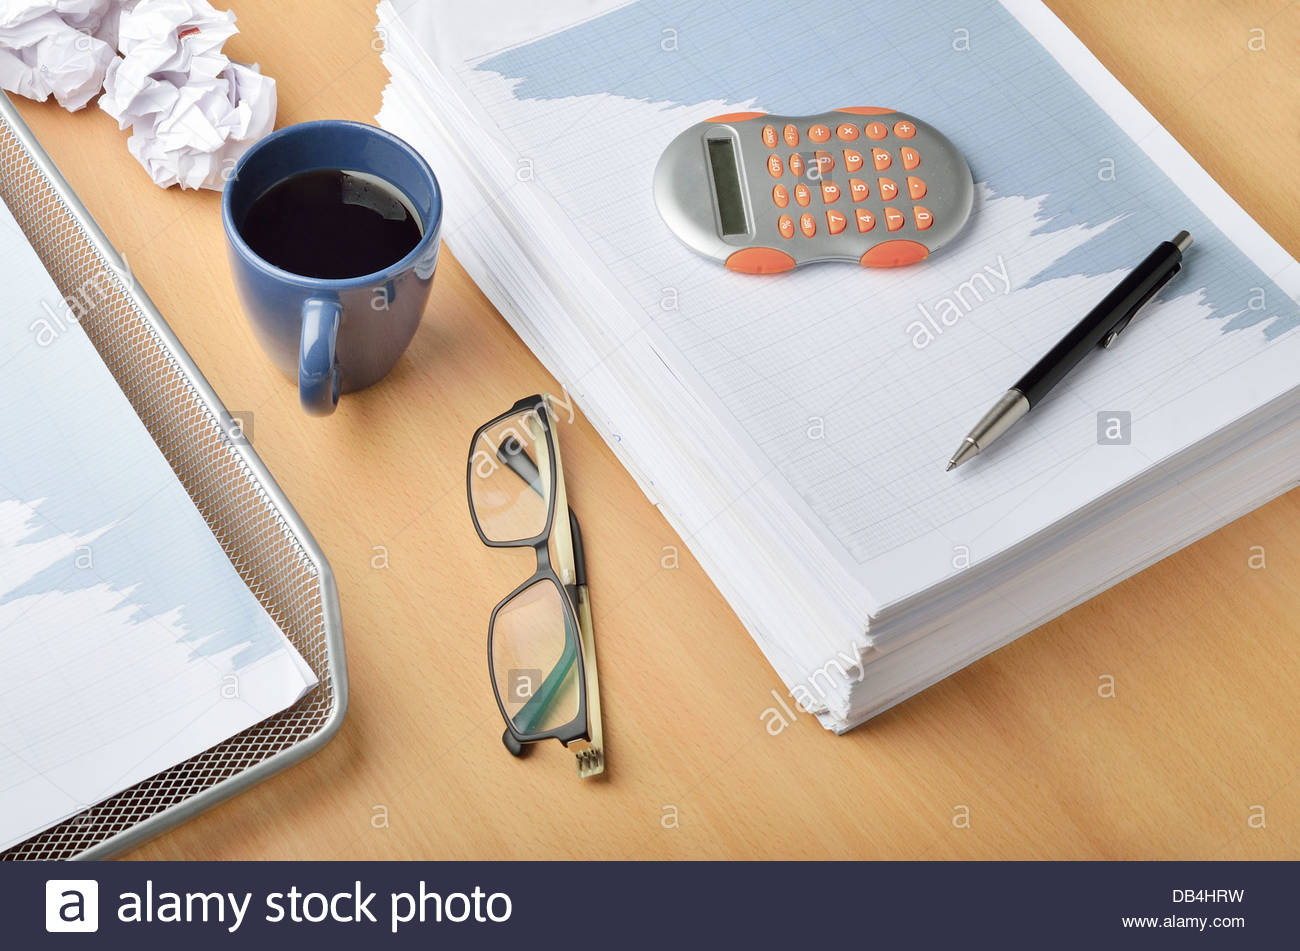 Working late and short deadlines at office - Stock Image